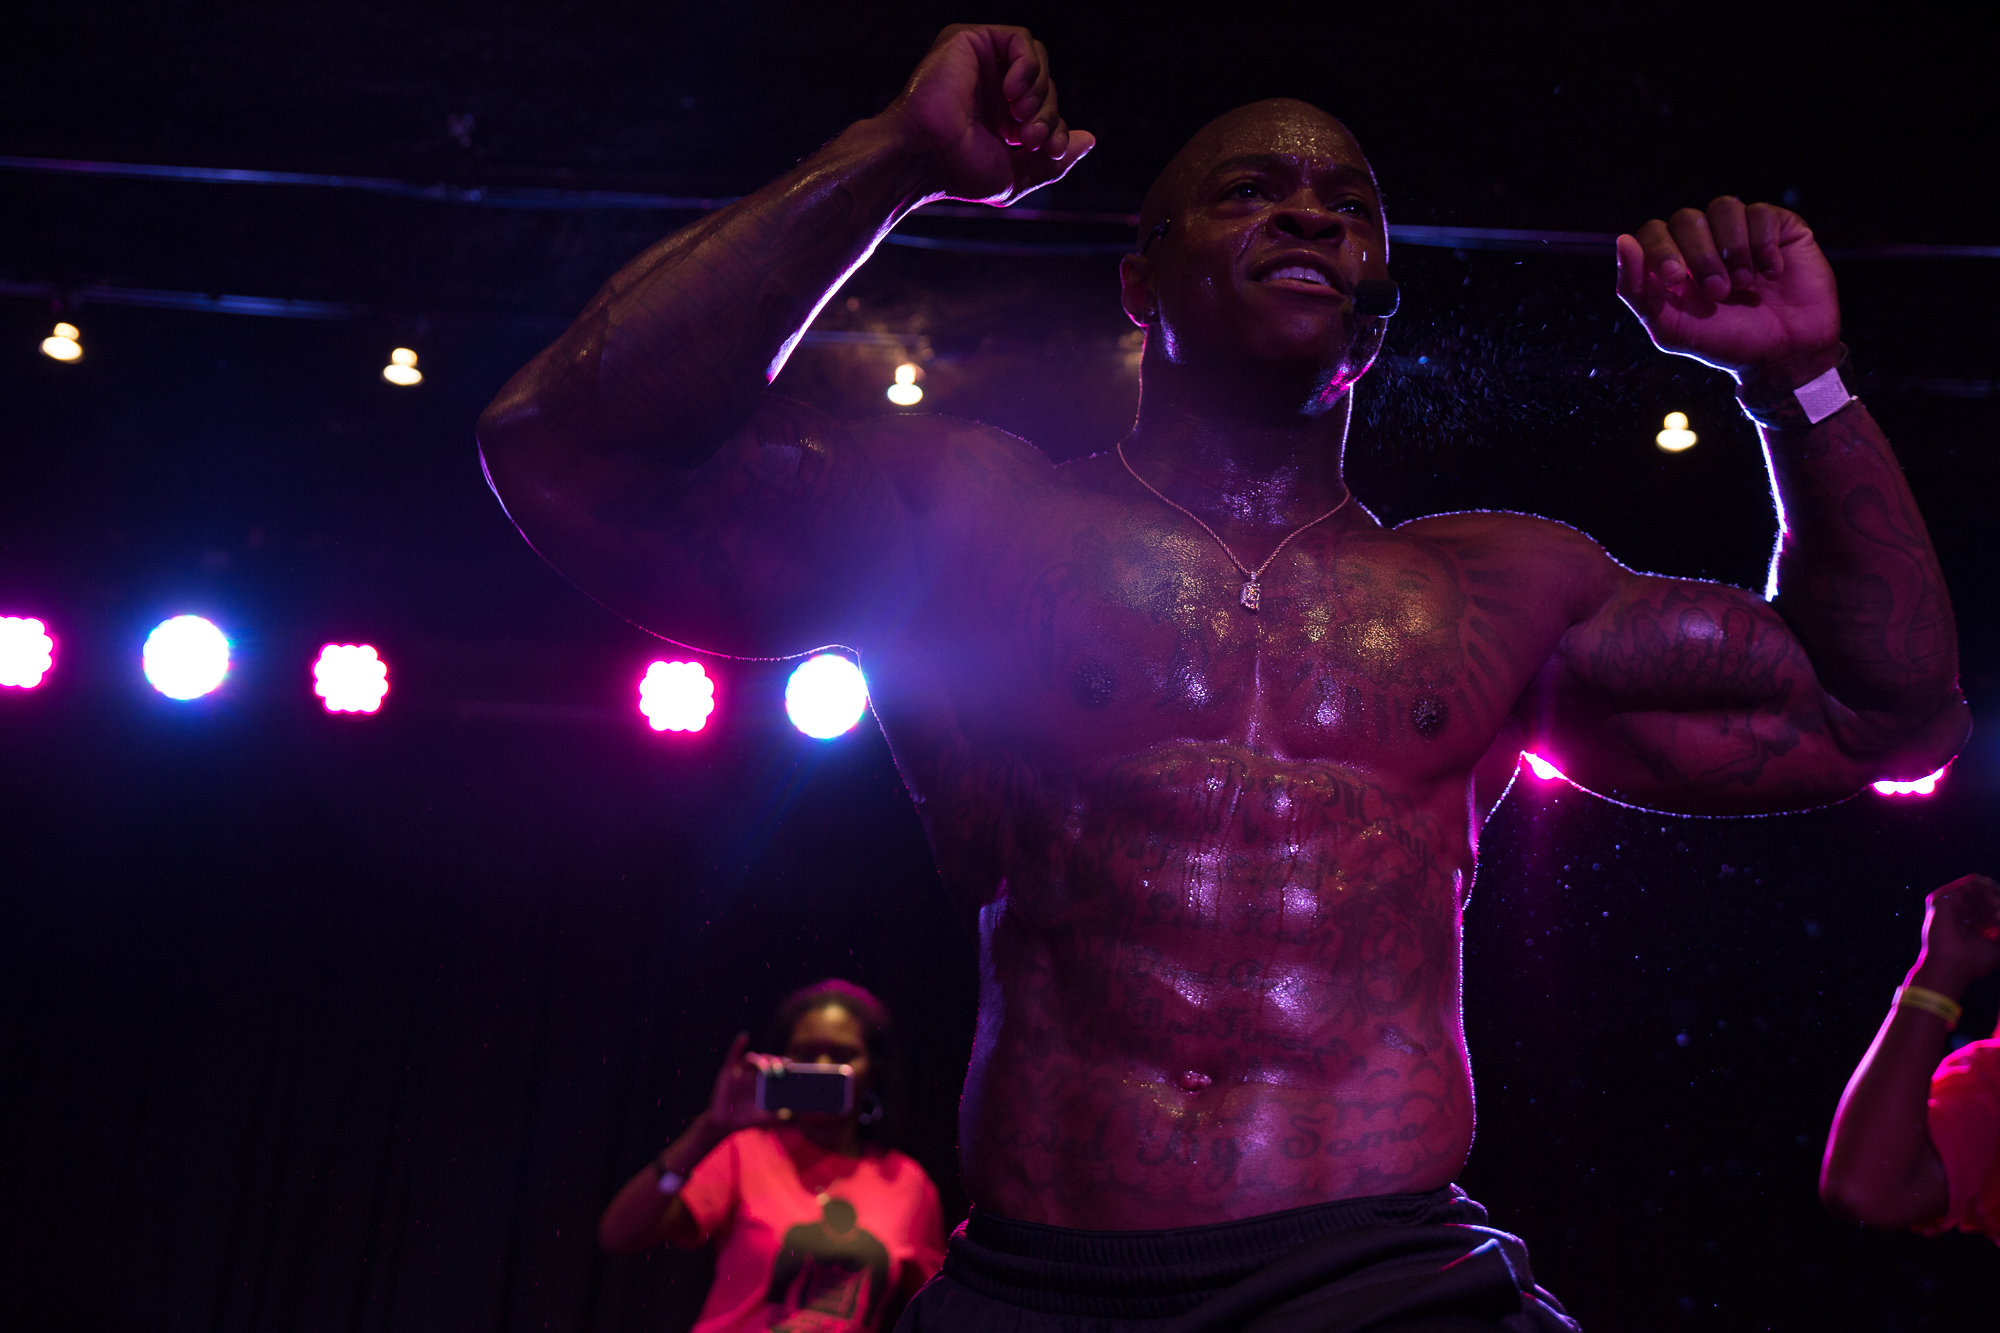 DaShaun confirming for the audience that he is the Guru of Abs